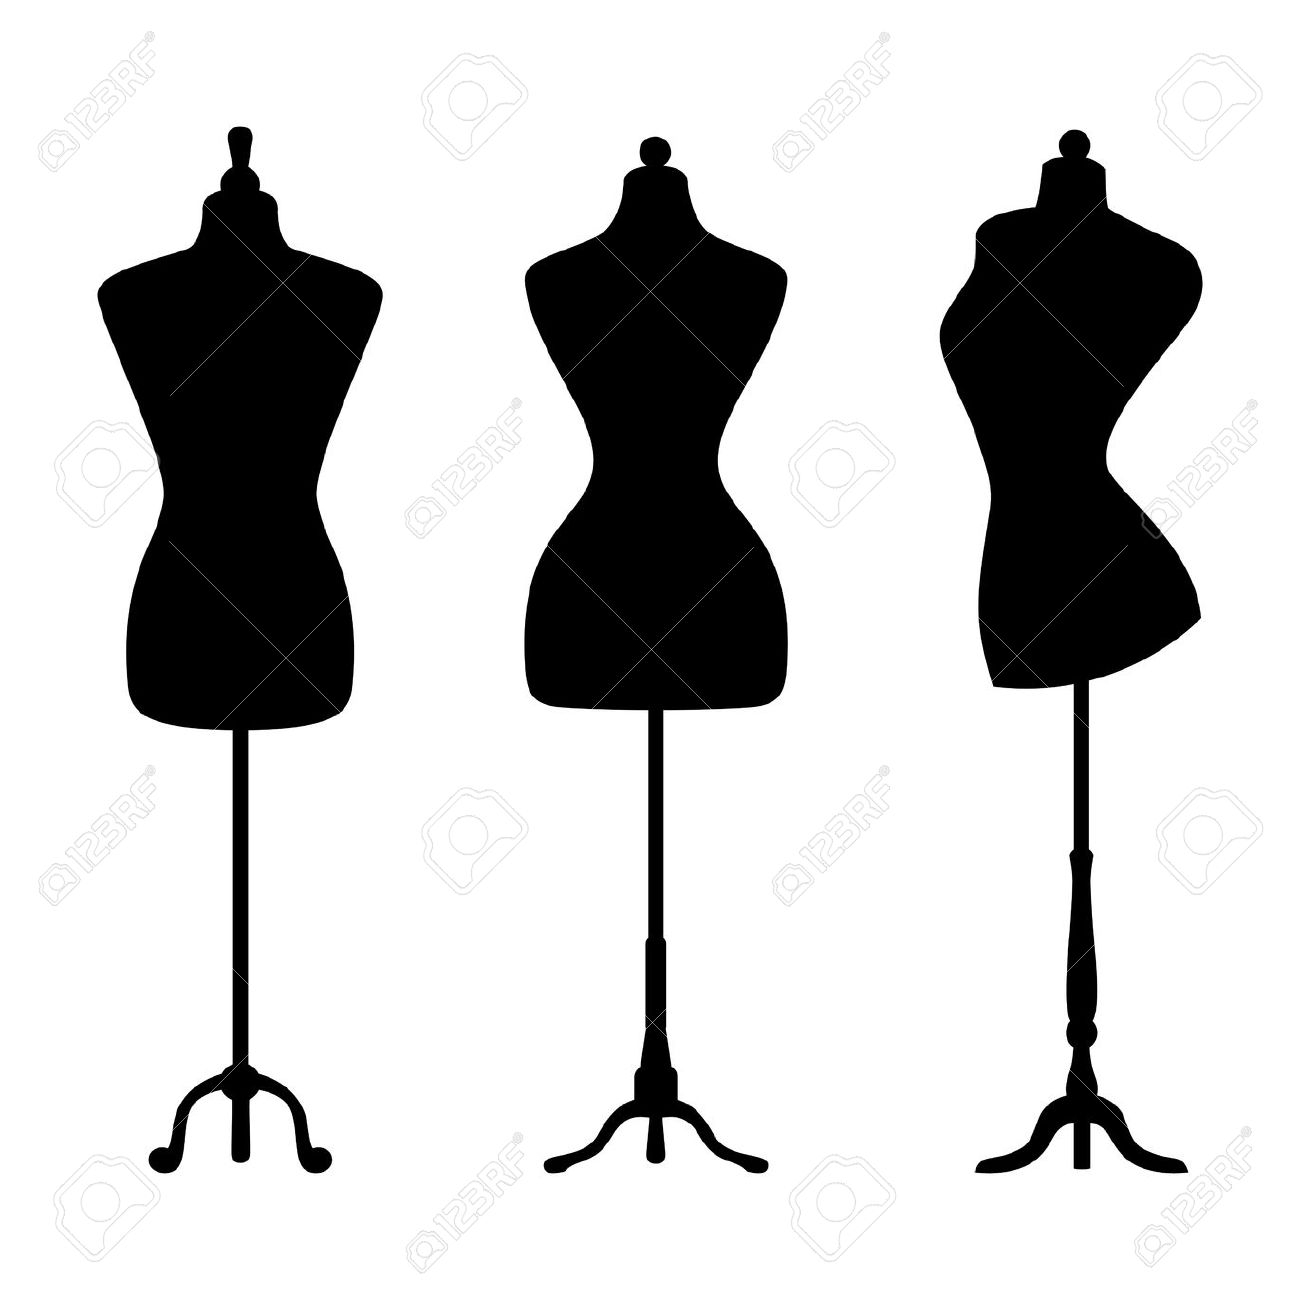 Fashion Mannequin Clip Art.